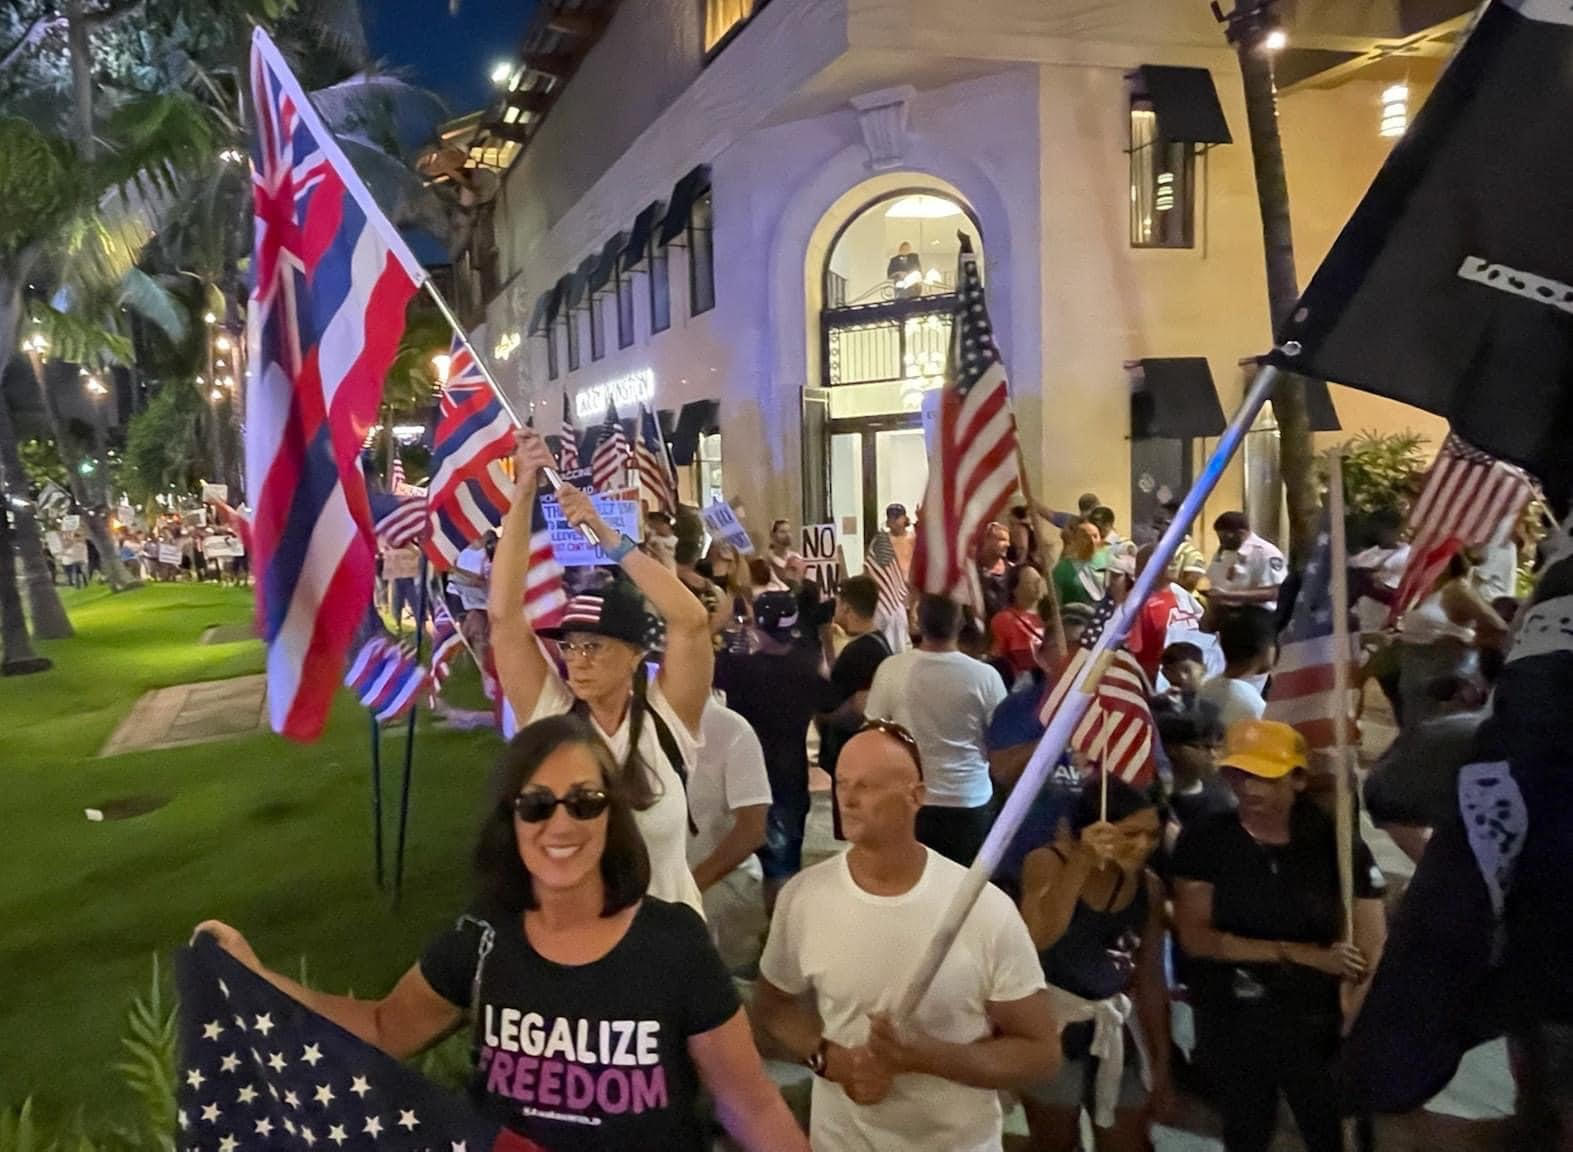 Hawai'i Matters: Why Fighting Off Global Tyranny There is Crucial for the Mainland - MAGA Institute